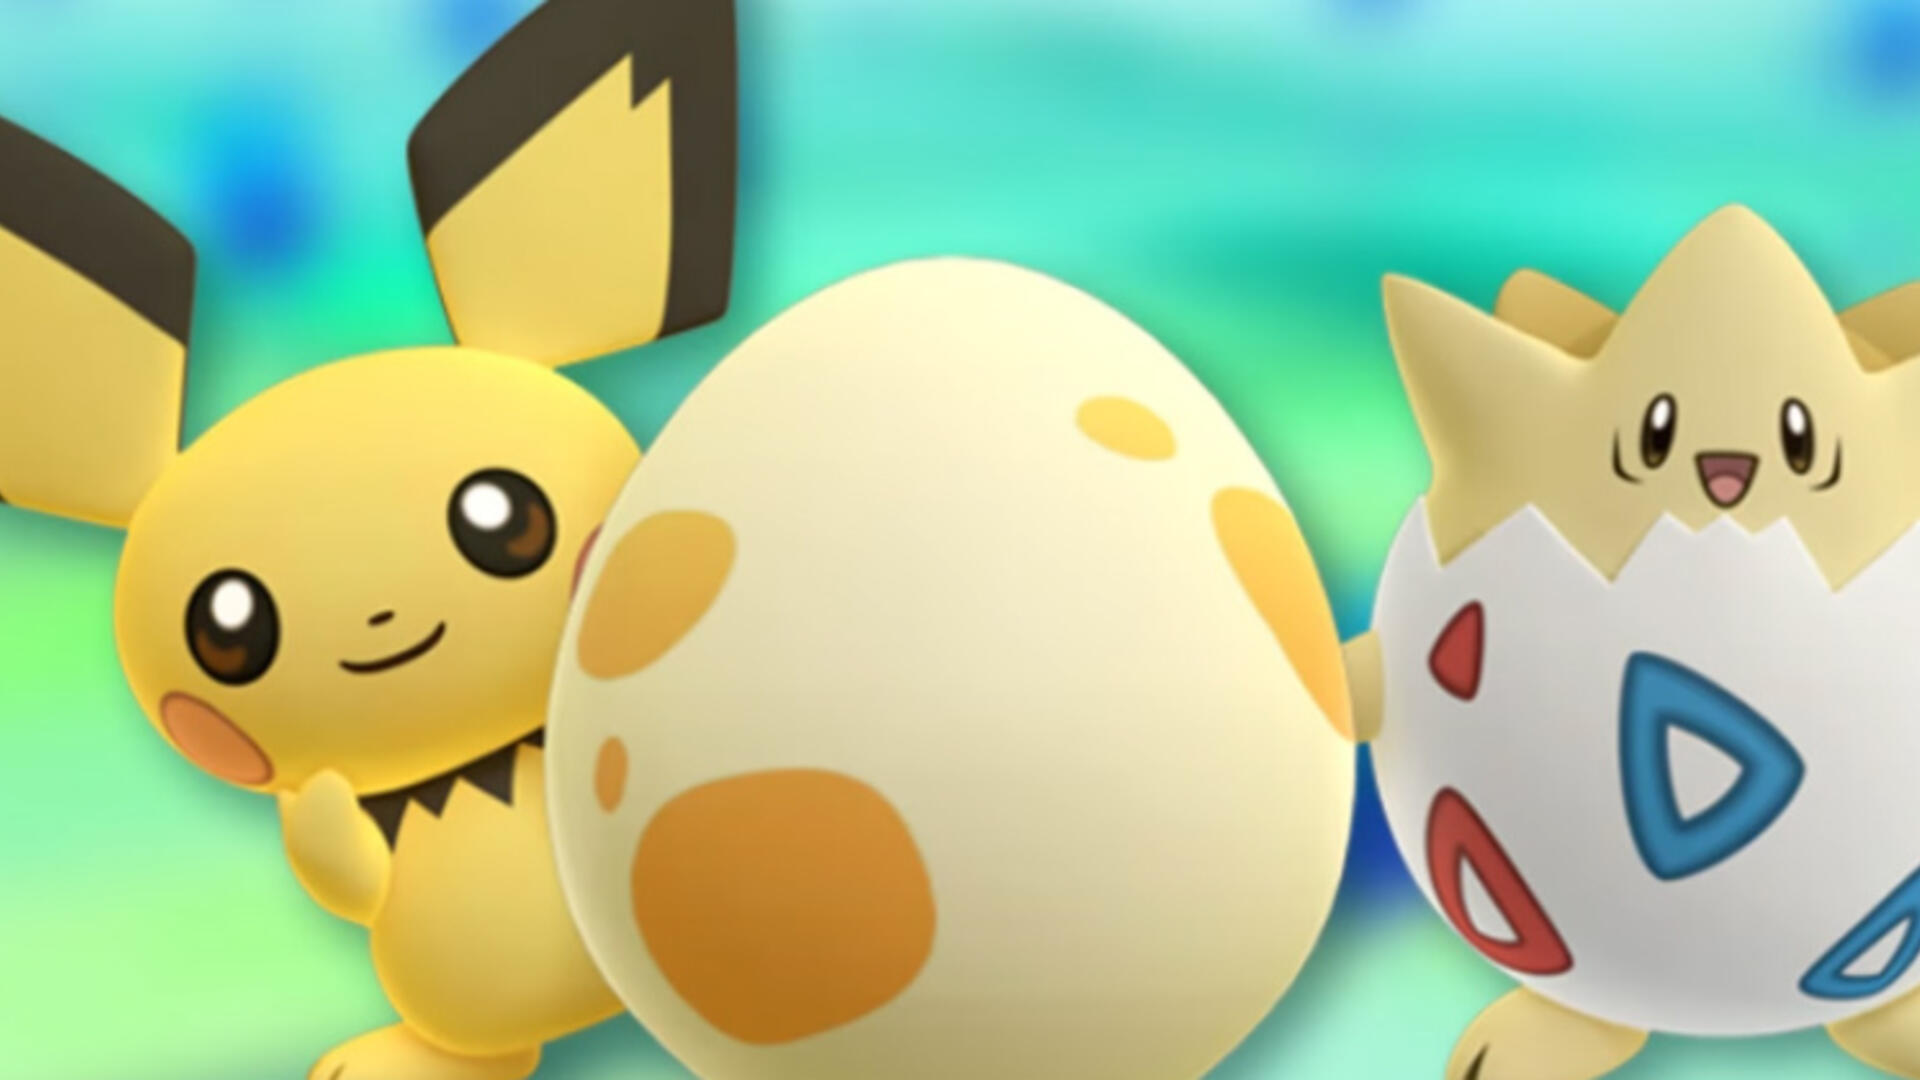 Pichu and Togepi Freed From Their Egg Prisons in New Pokemon Go Update